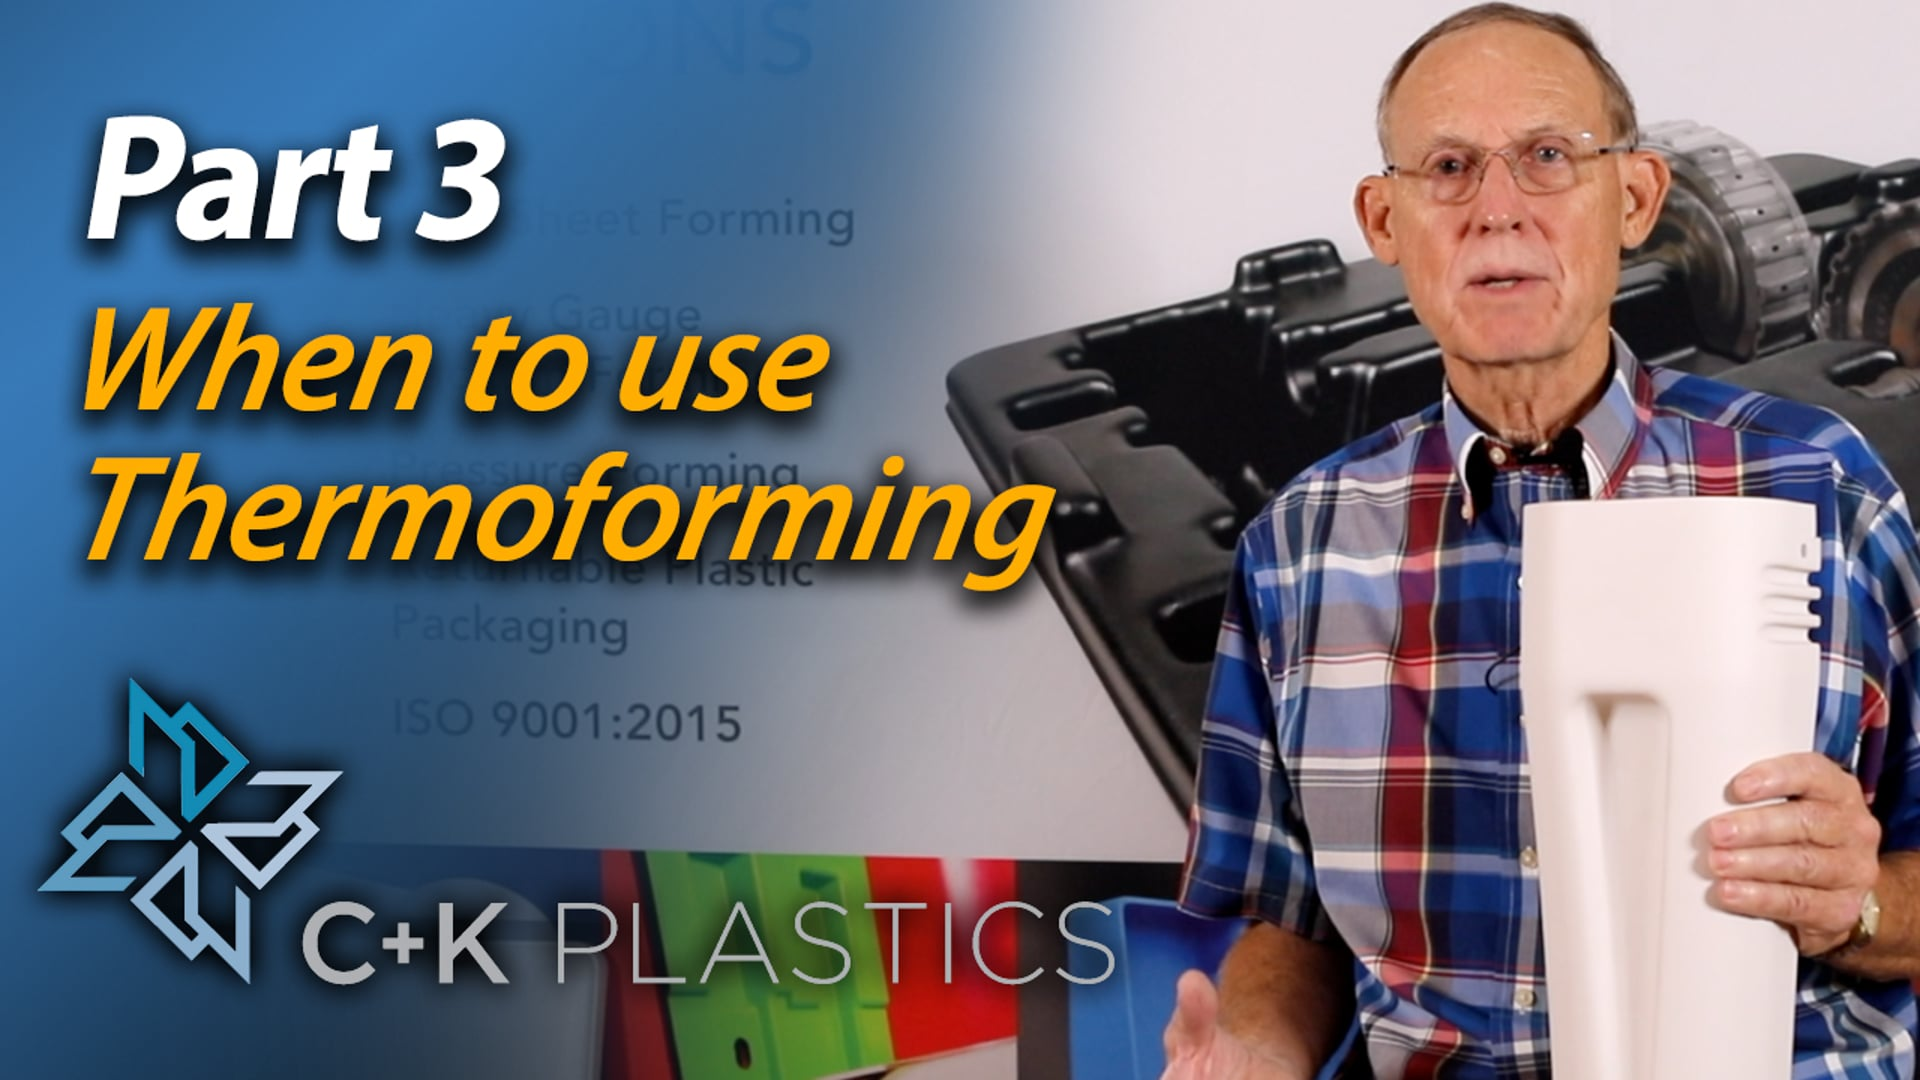 When to use thermoforming